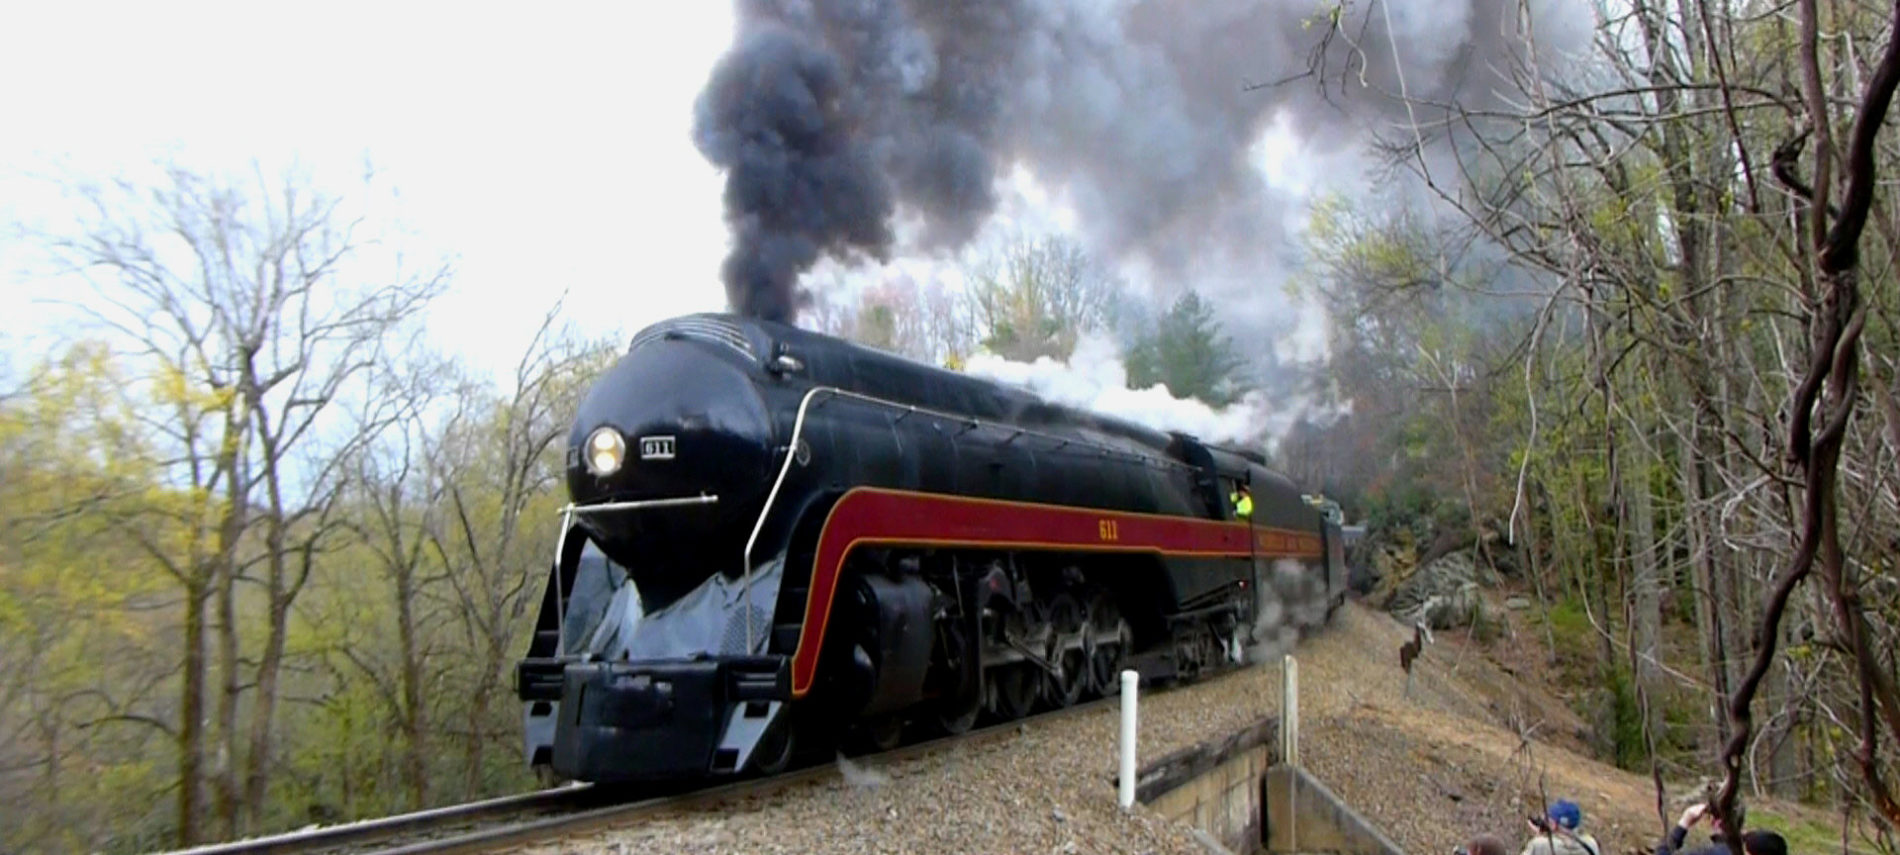 Large train engine with steam coming out of the top as it goes by on railroad tracks